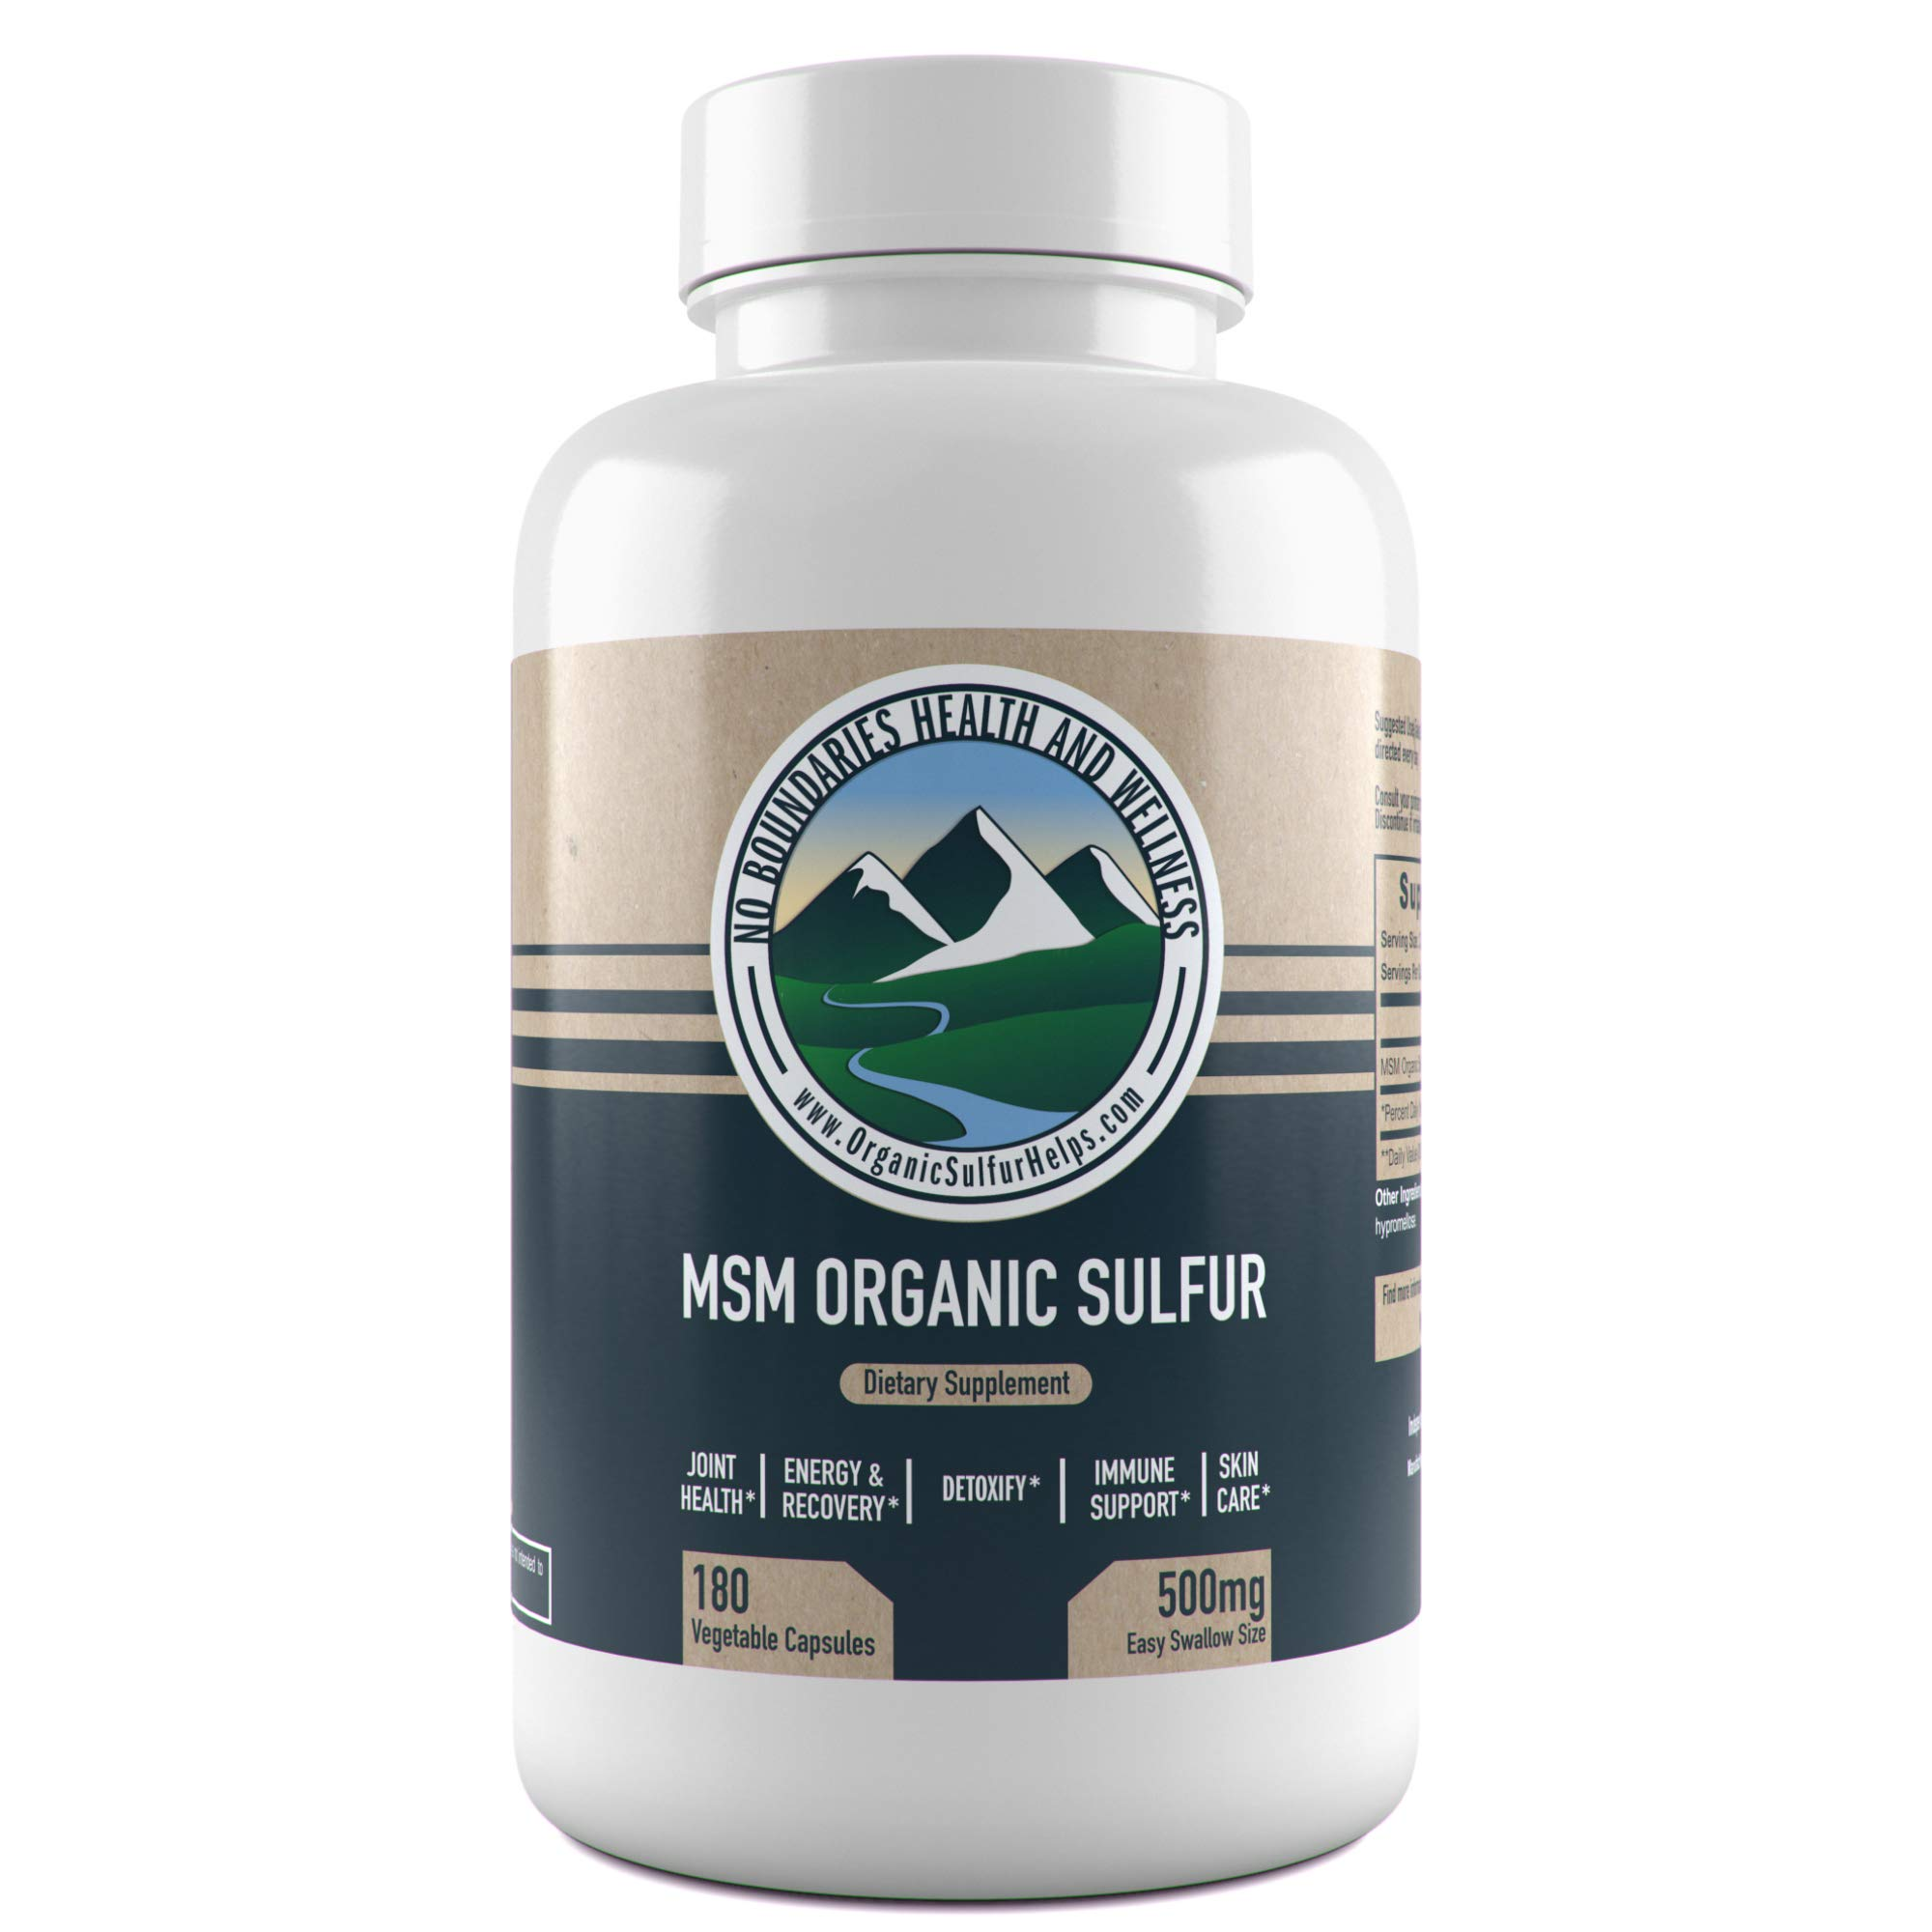 500mg MSM Organic Sulfur Capsules by No Boundaries Health and Wellness - 180 Vegetable Capsules: No Excipients or Fillers - Premium Health Supplement: 99.9% Pure MSM Powder - Joints, Skin, Hair, Nail by No Boundaries Health and Wellness MSM Organic Sulfur